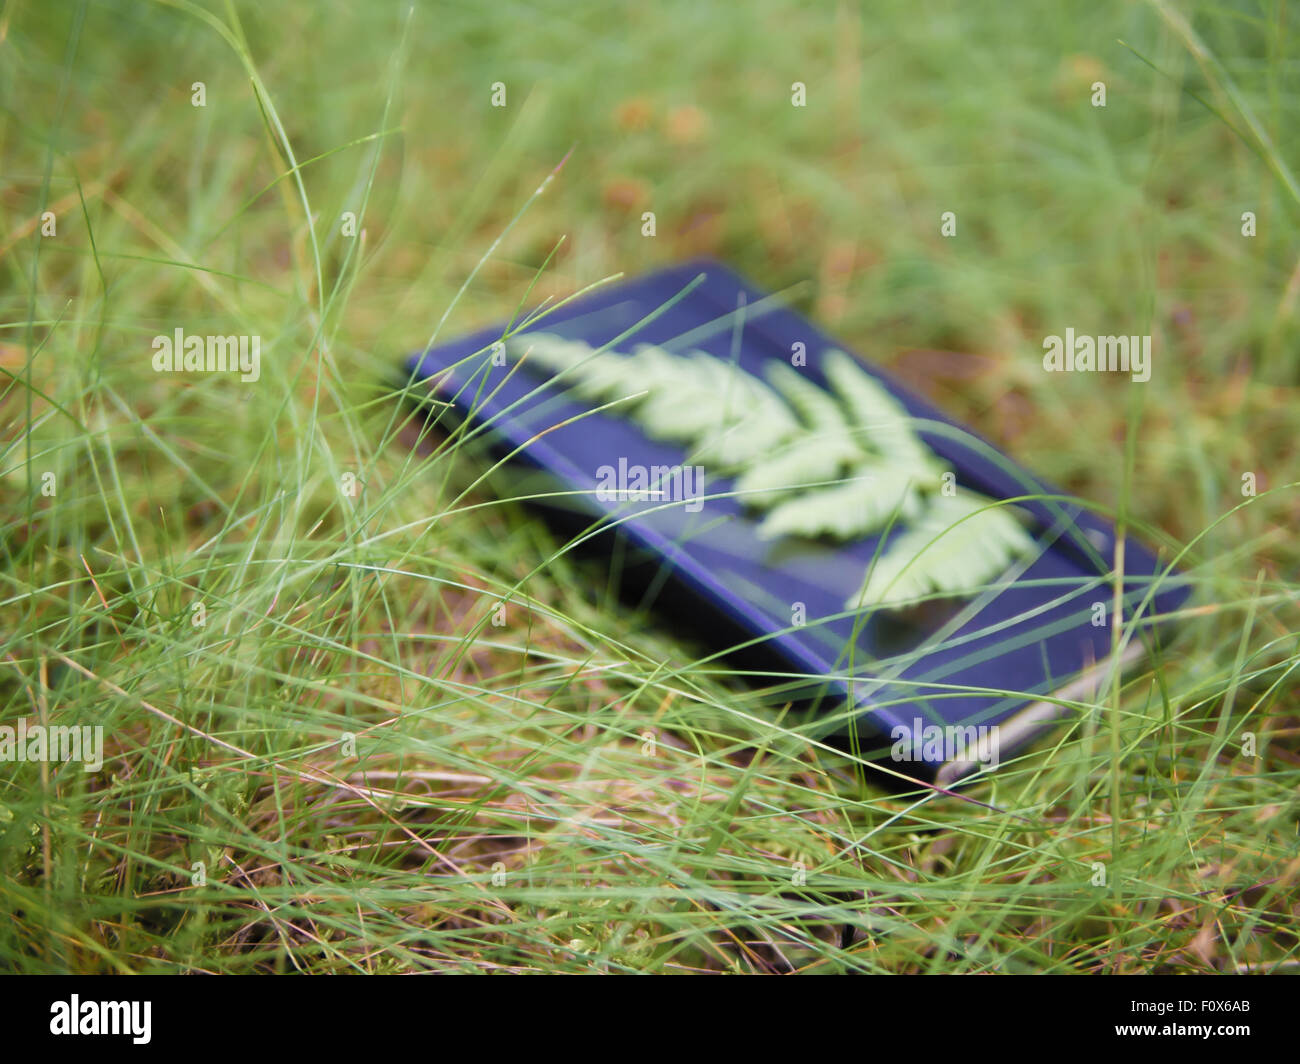 Daydream conceptualisation, out-of-focus notebook lying in grass - Stock Image